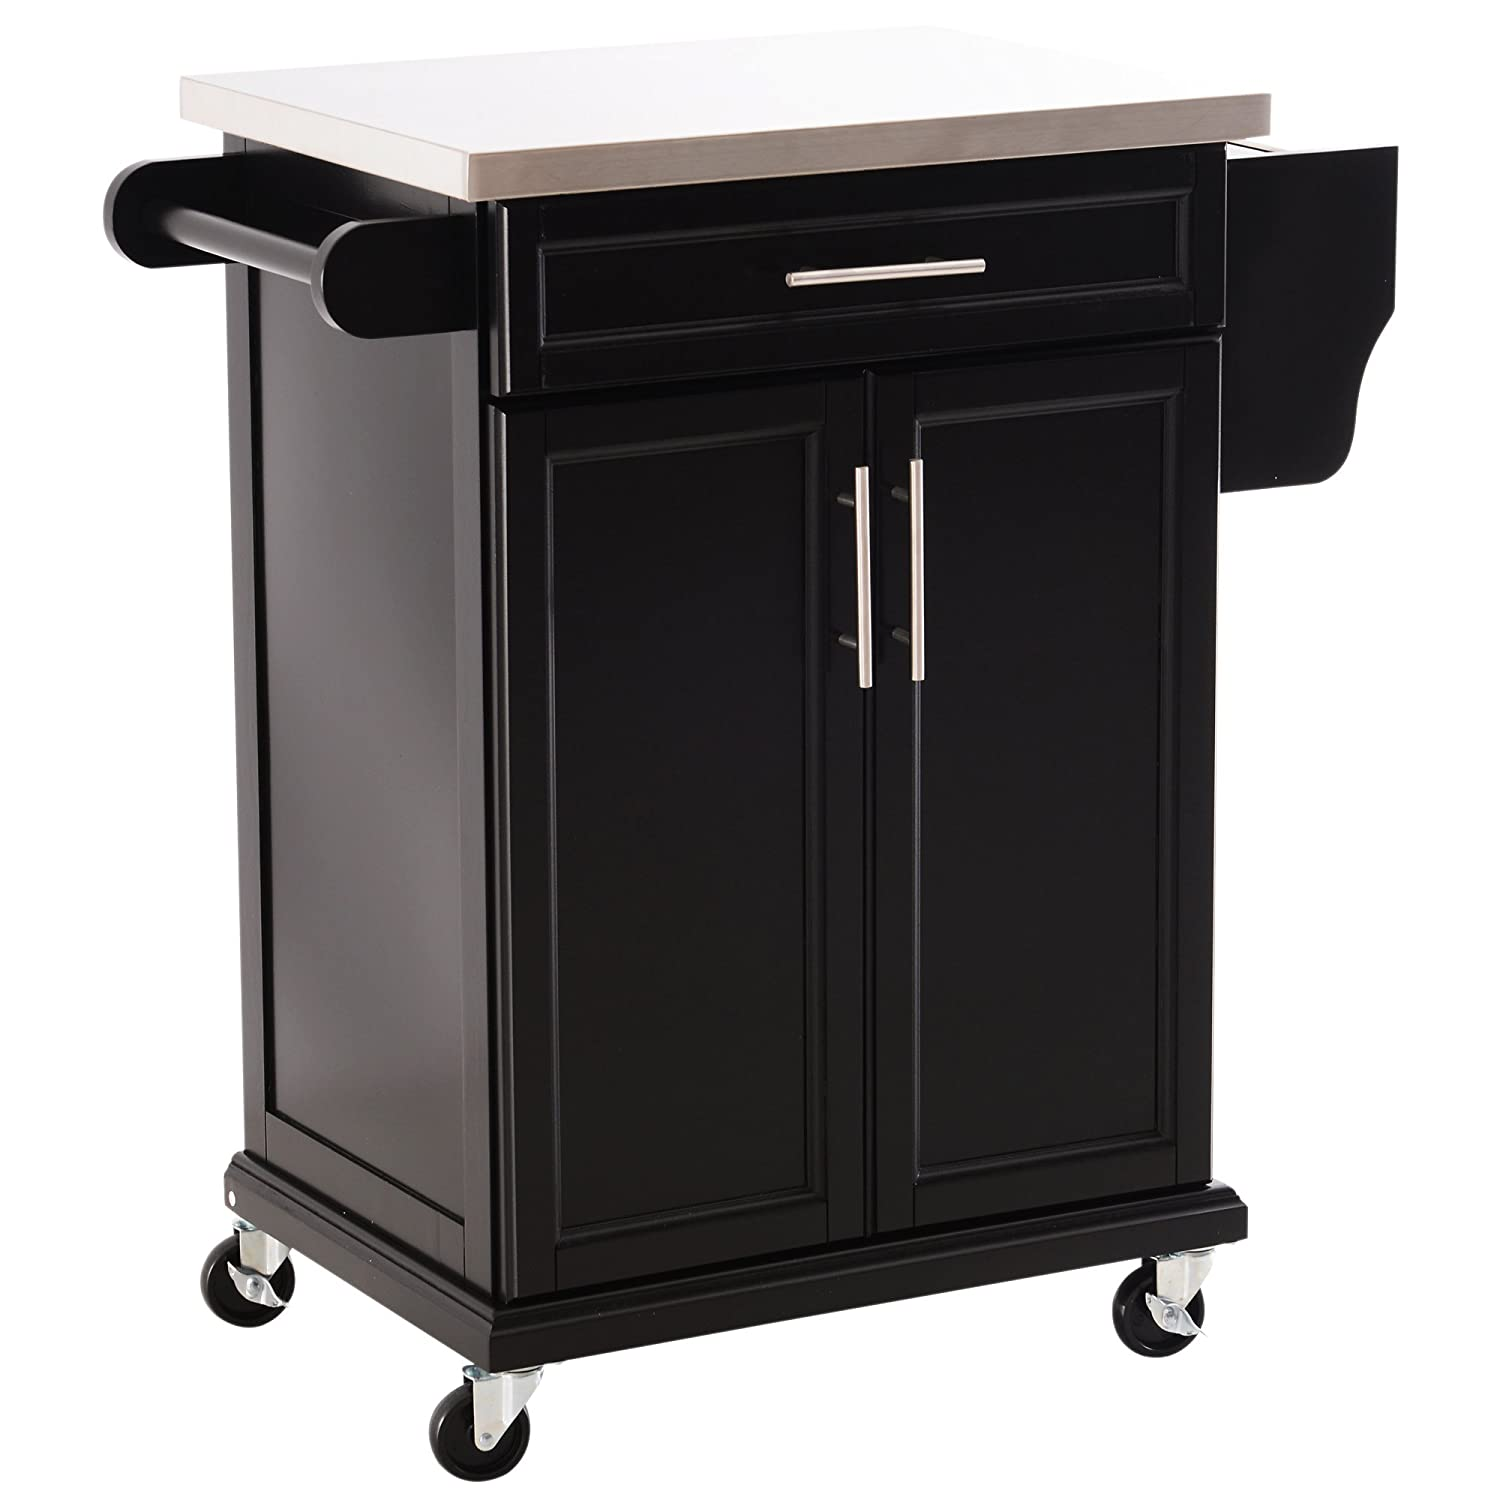 HOMCOM Wooden Kitchen Cart Serving Trolley Storage Cabinet Cupboard with Stainless Steel Top 1 Drawer 4 Wheels Side Handle & Rack - Black Sold by MHSTAR